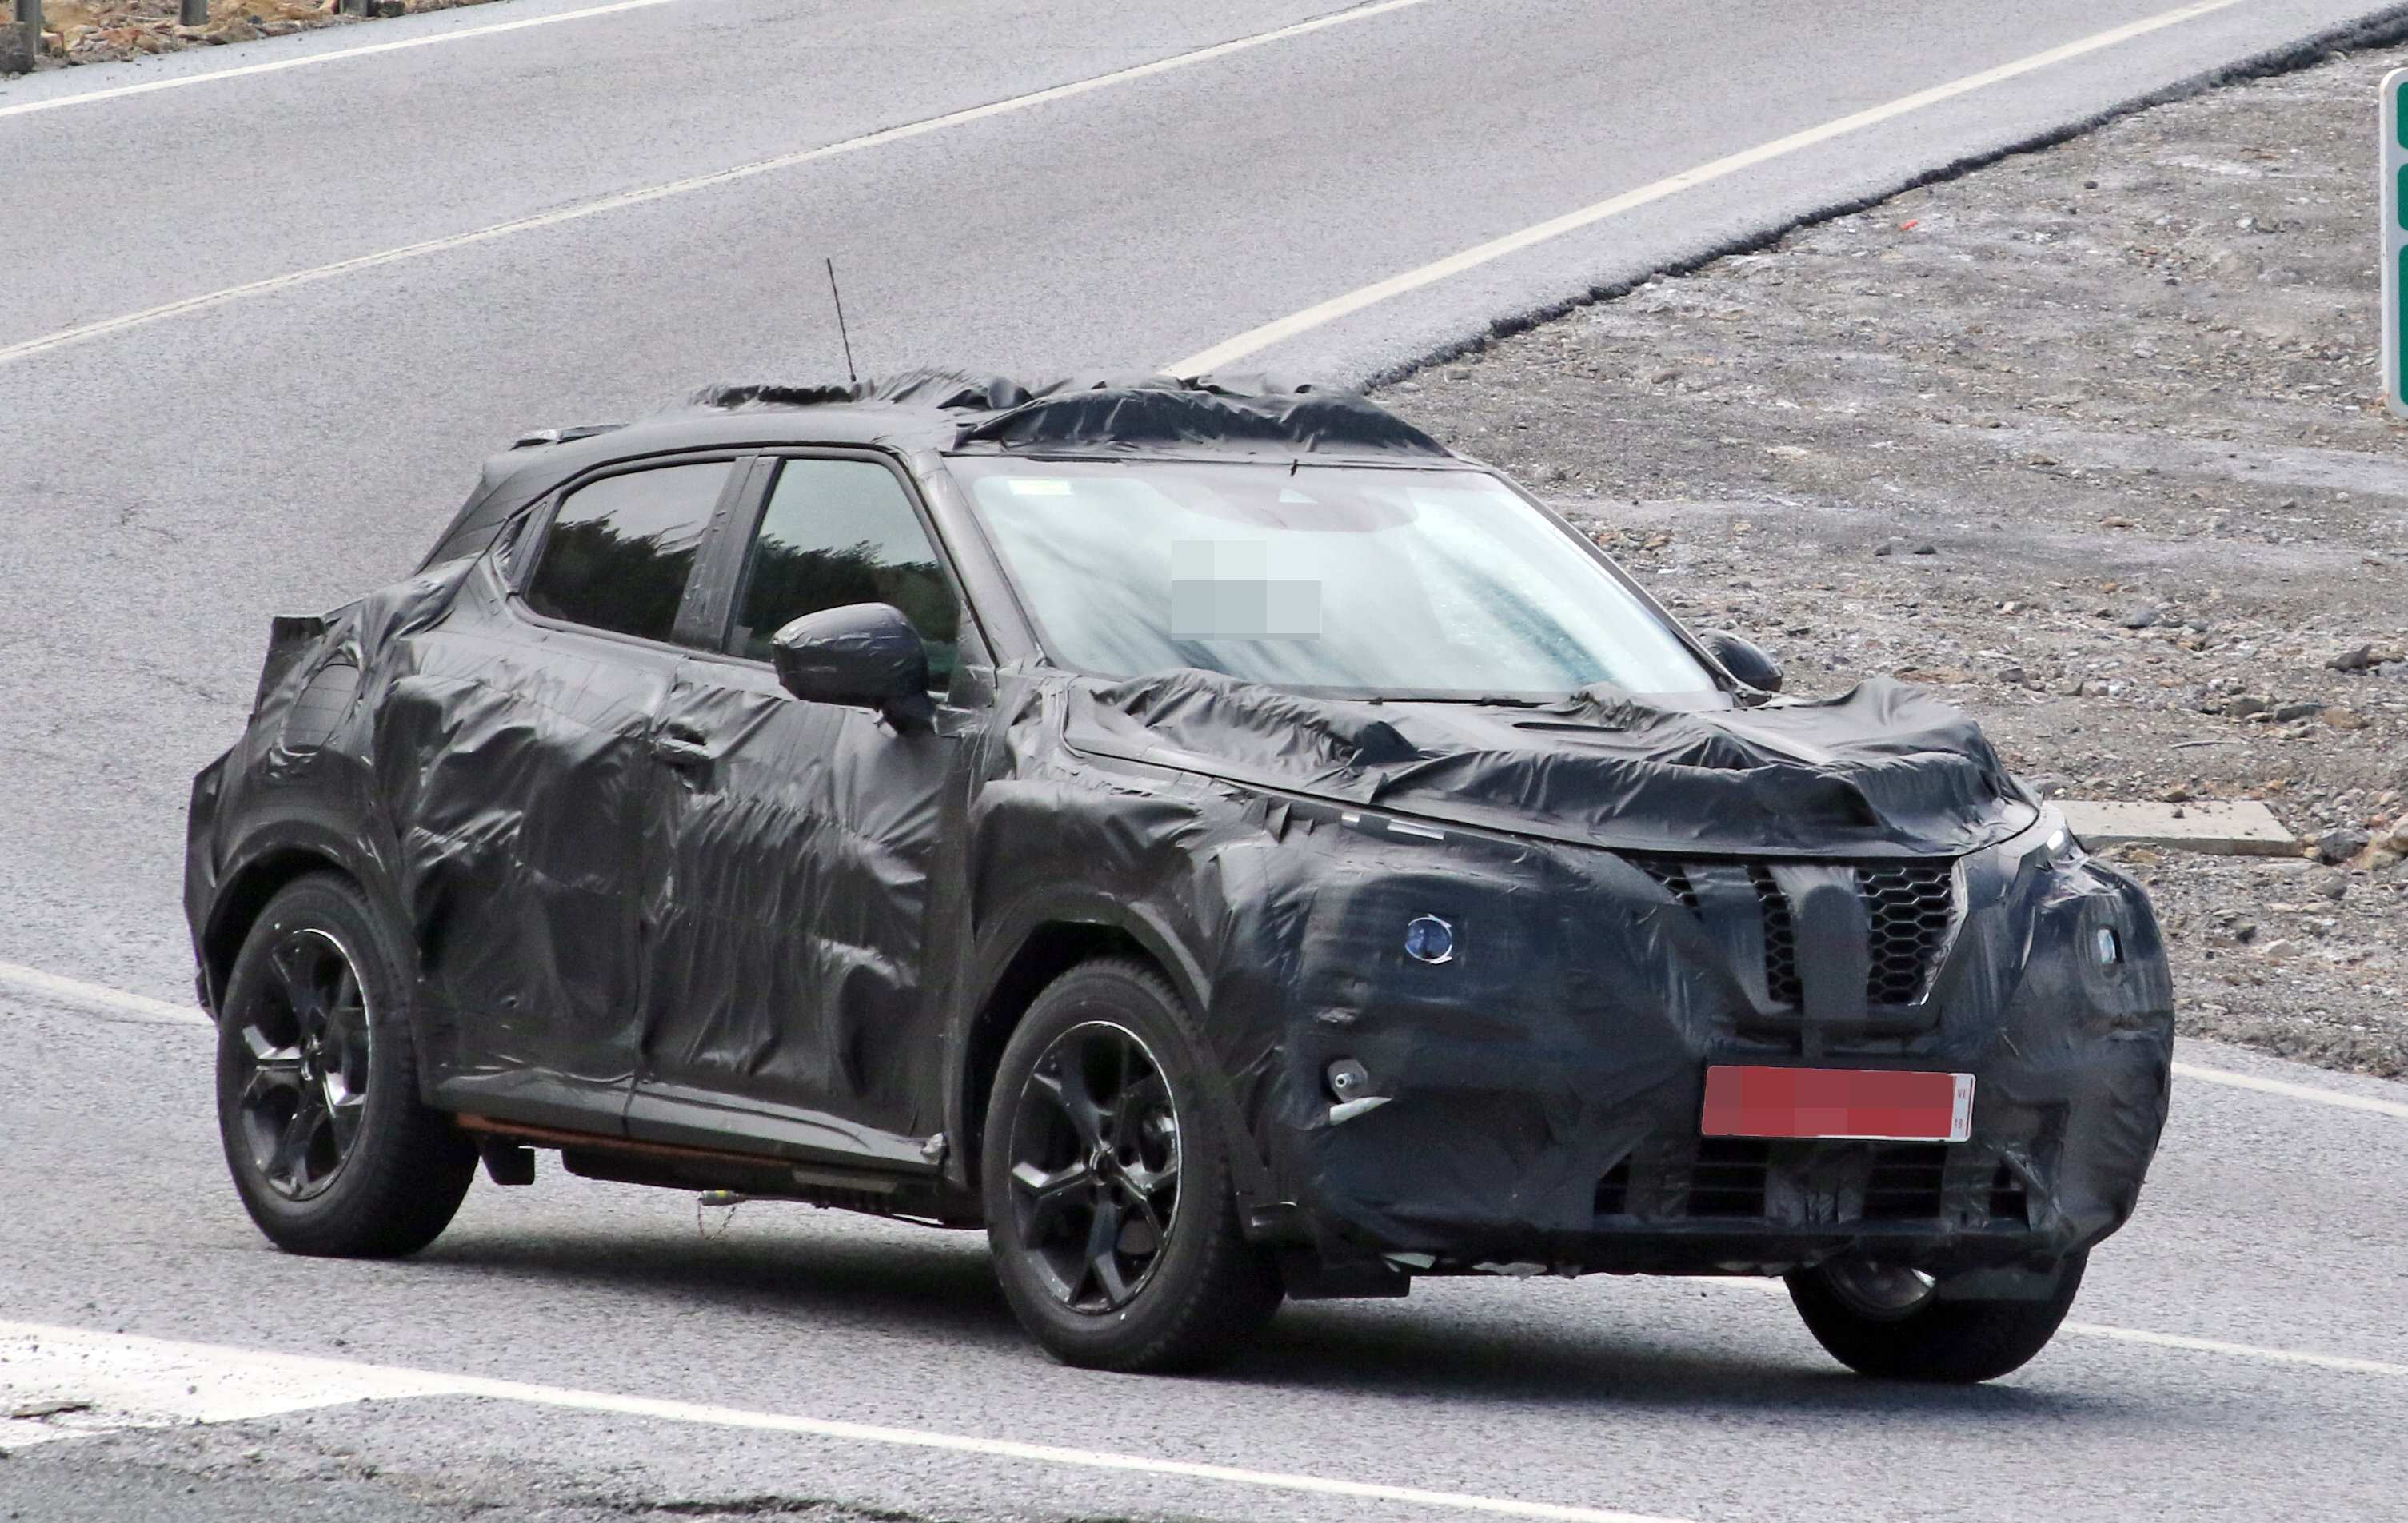 70 All New Nissan Juke 2020 Release Date Spy Shoot